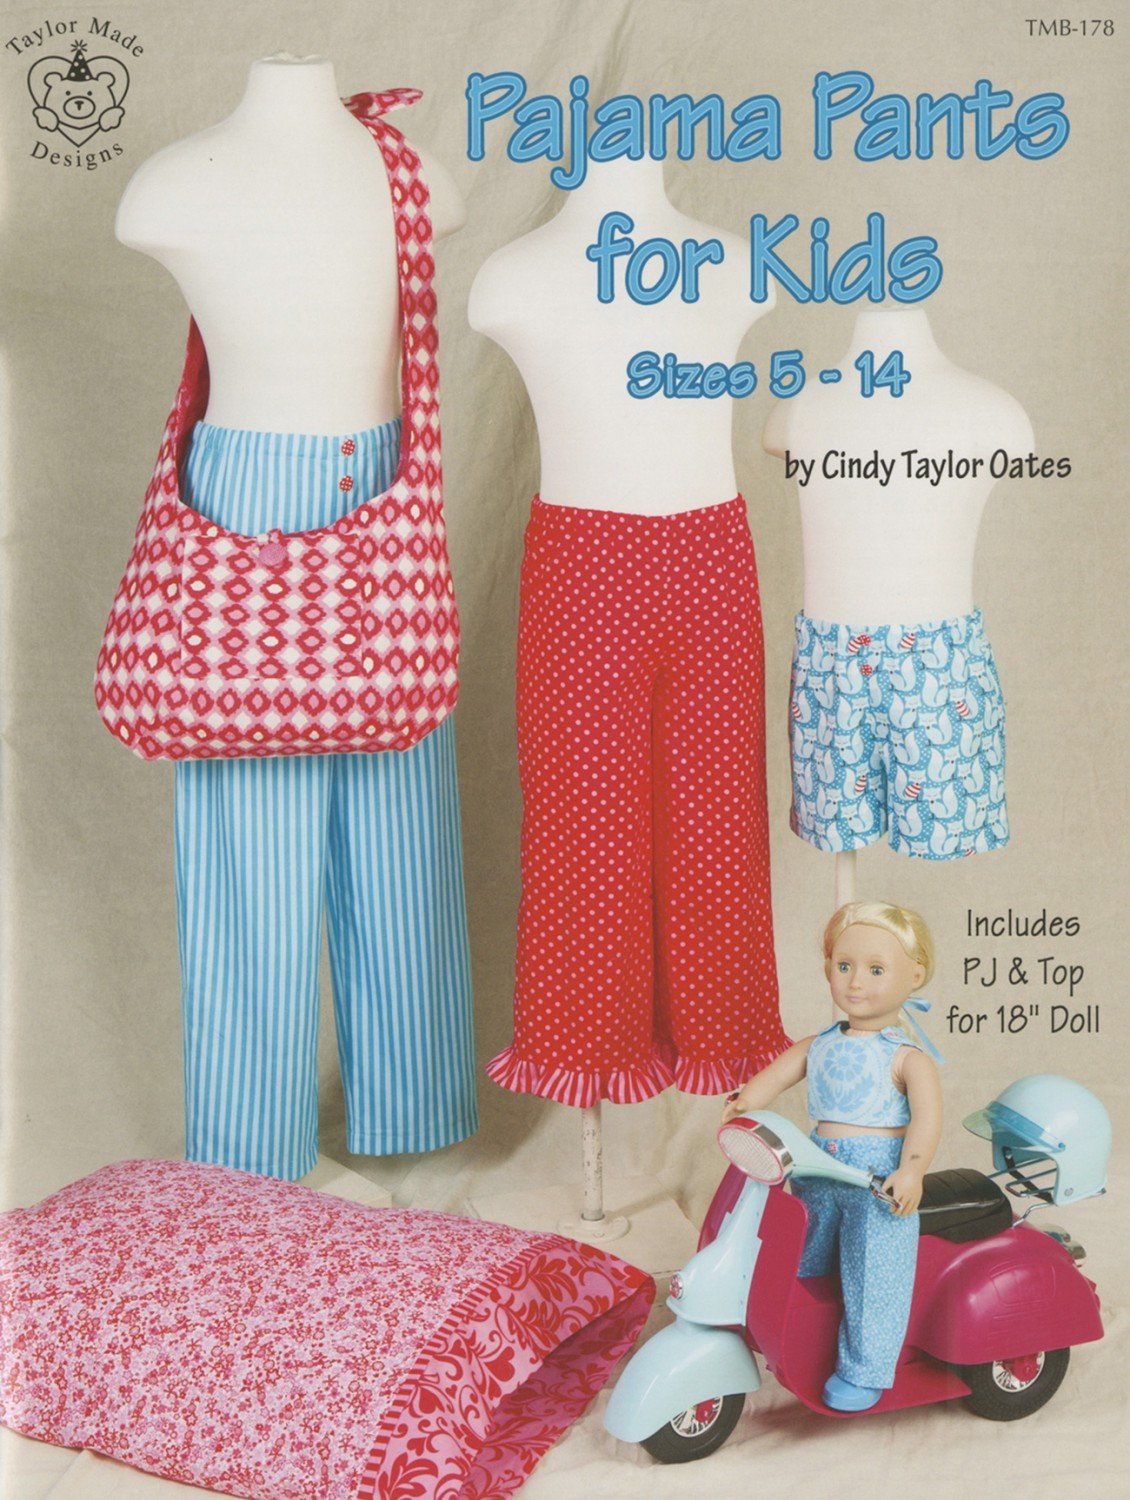 Pajama Pants for Kids by Cindy Taylor Oates TMB178